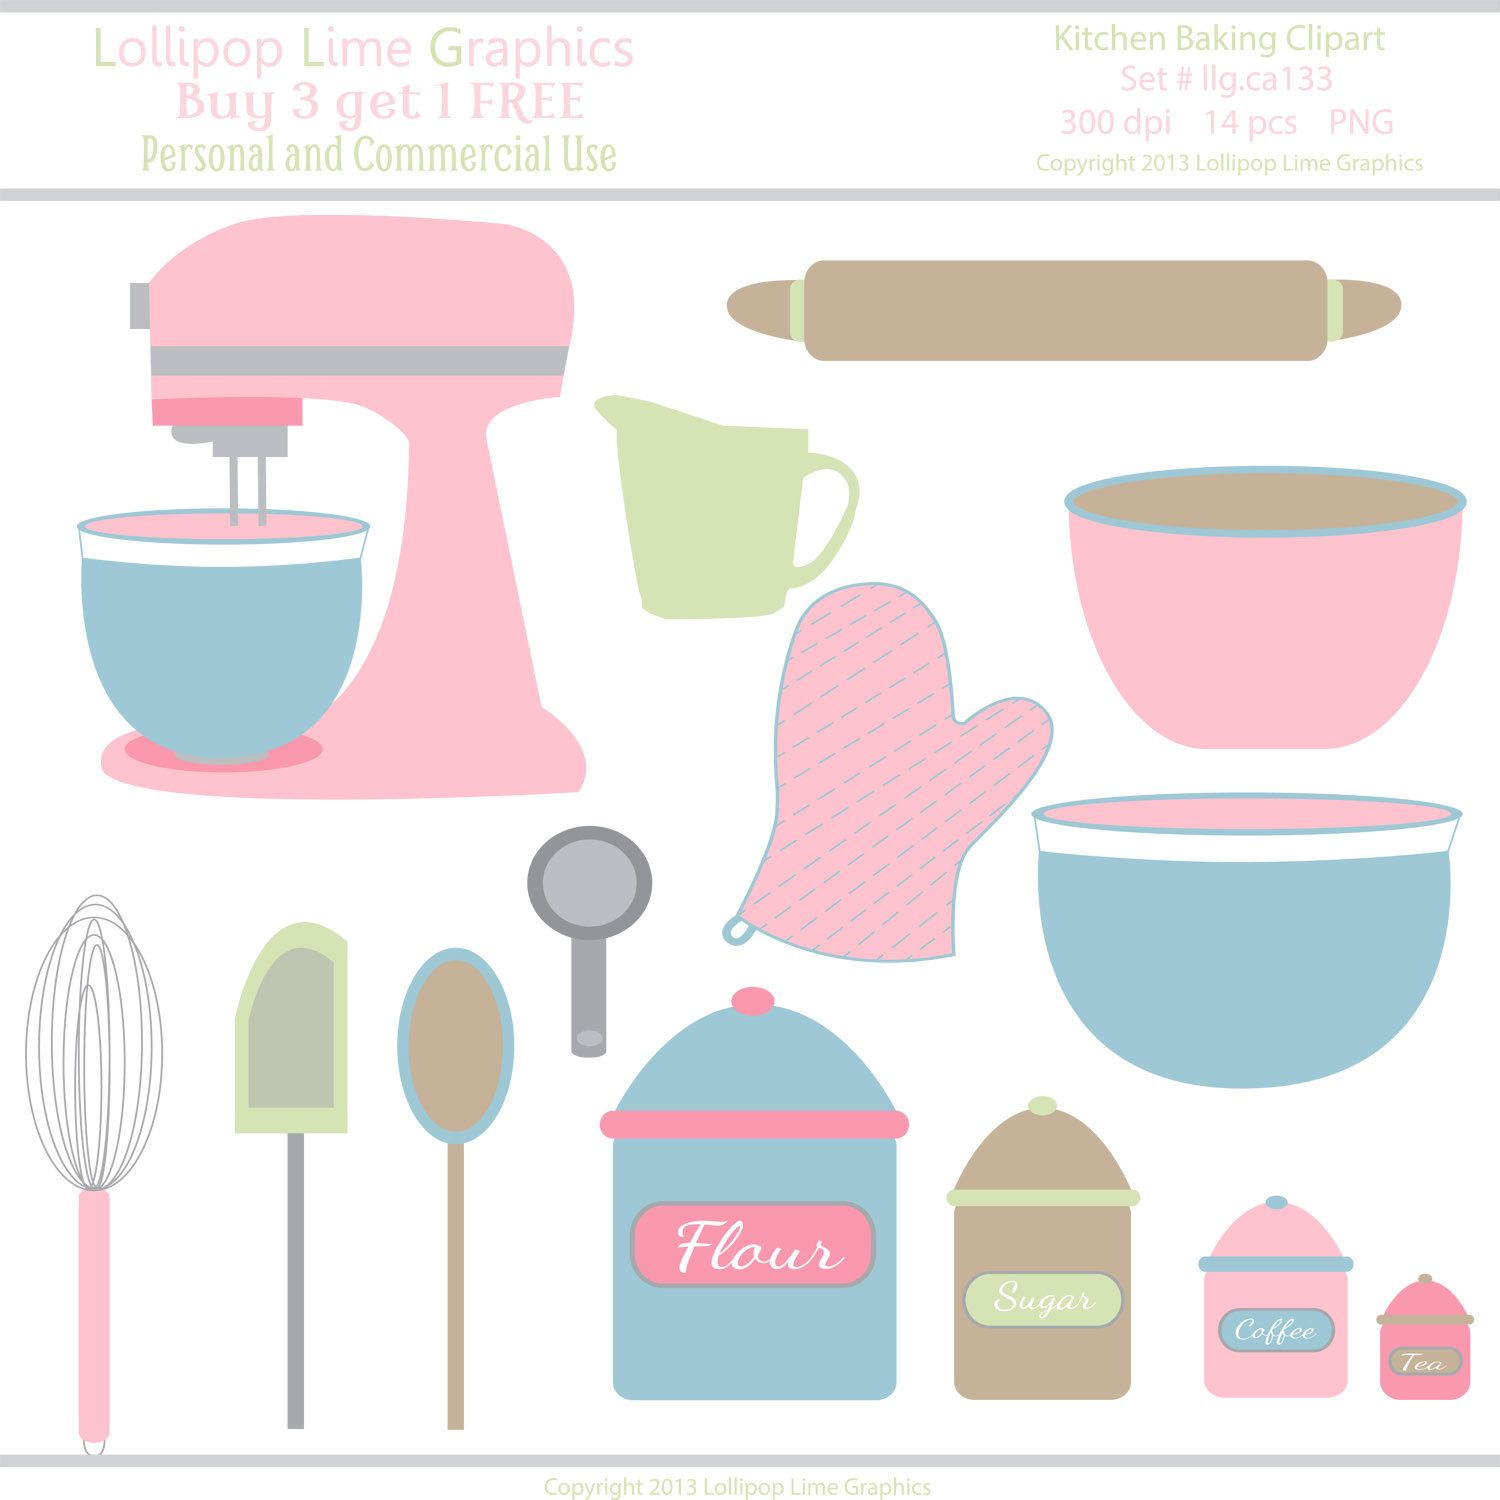 Kitchen Utensils Clipart At Getdrawings Com Free For